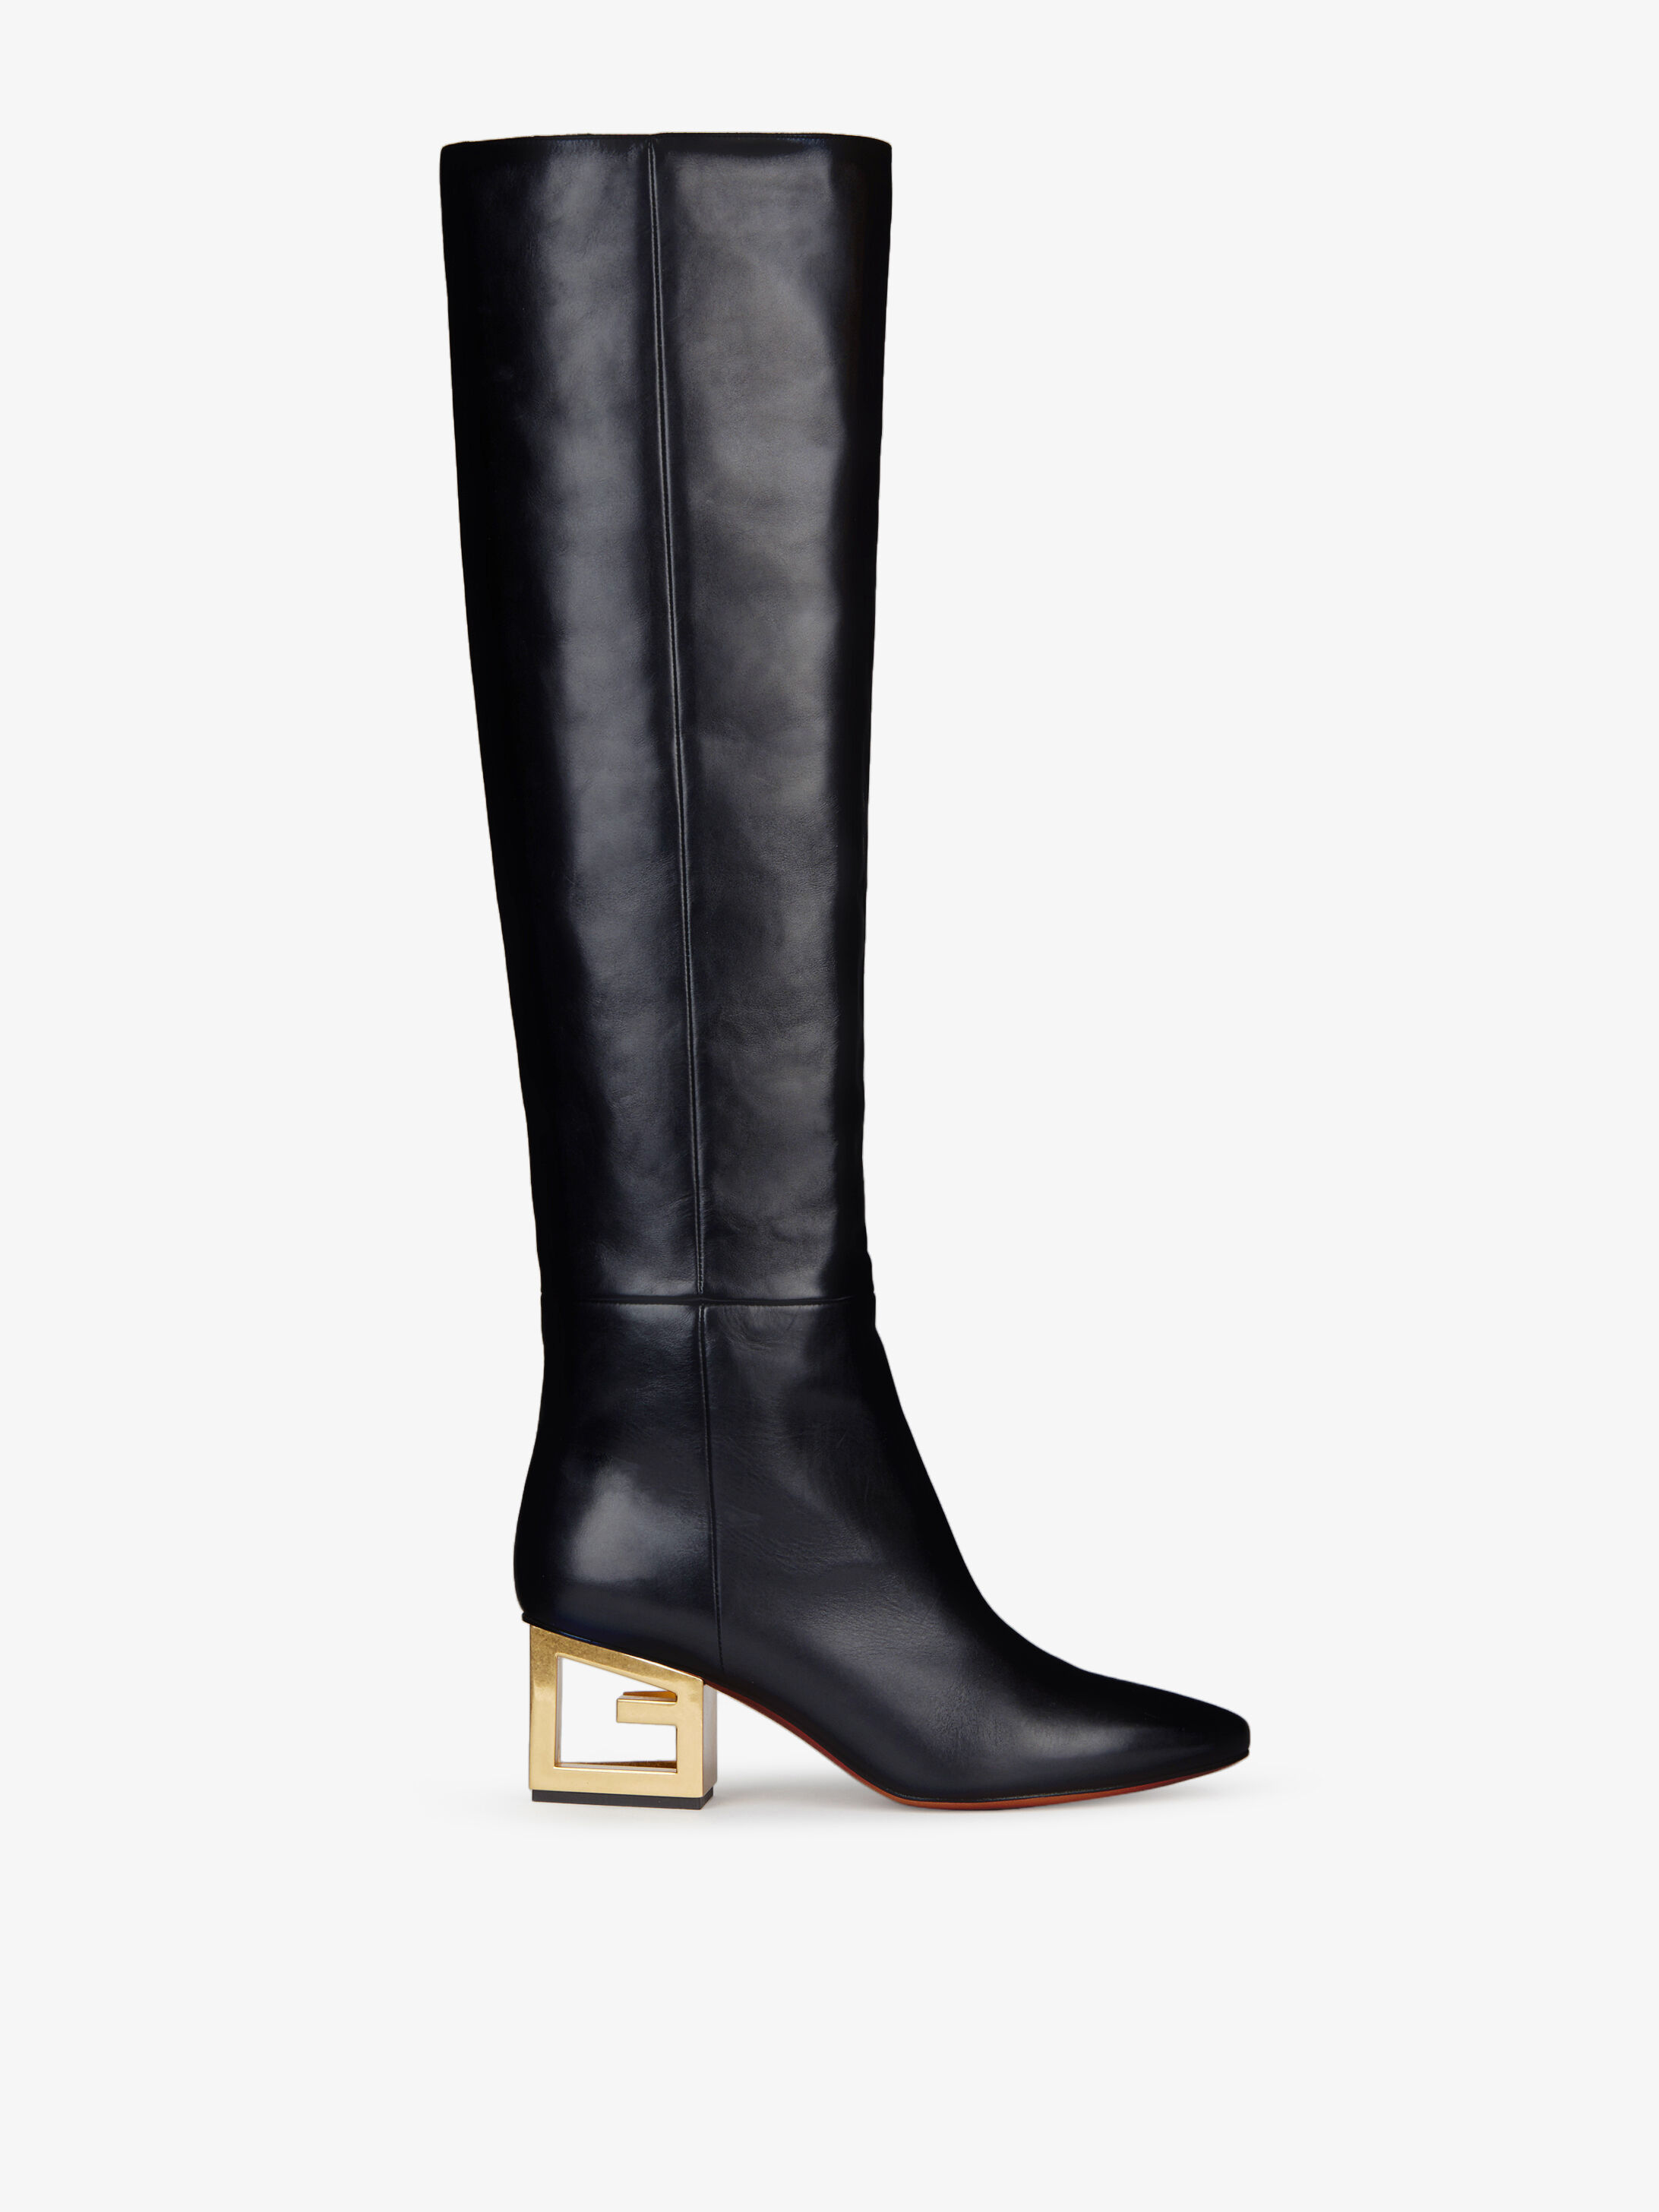 et par Femme Givenchy collection Bottes La Bottines Y7gf6ybv